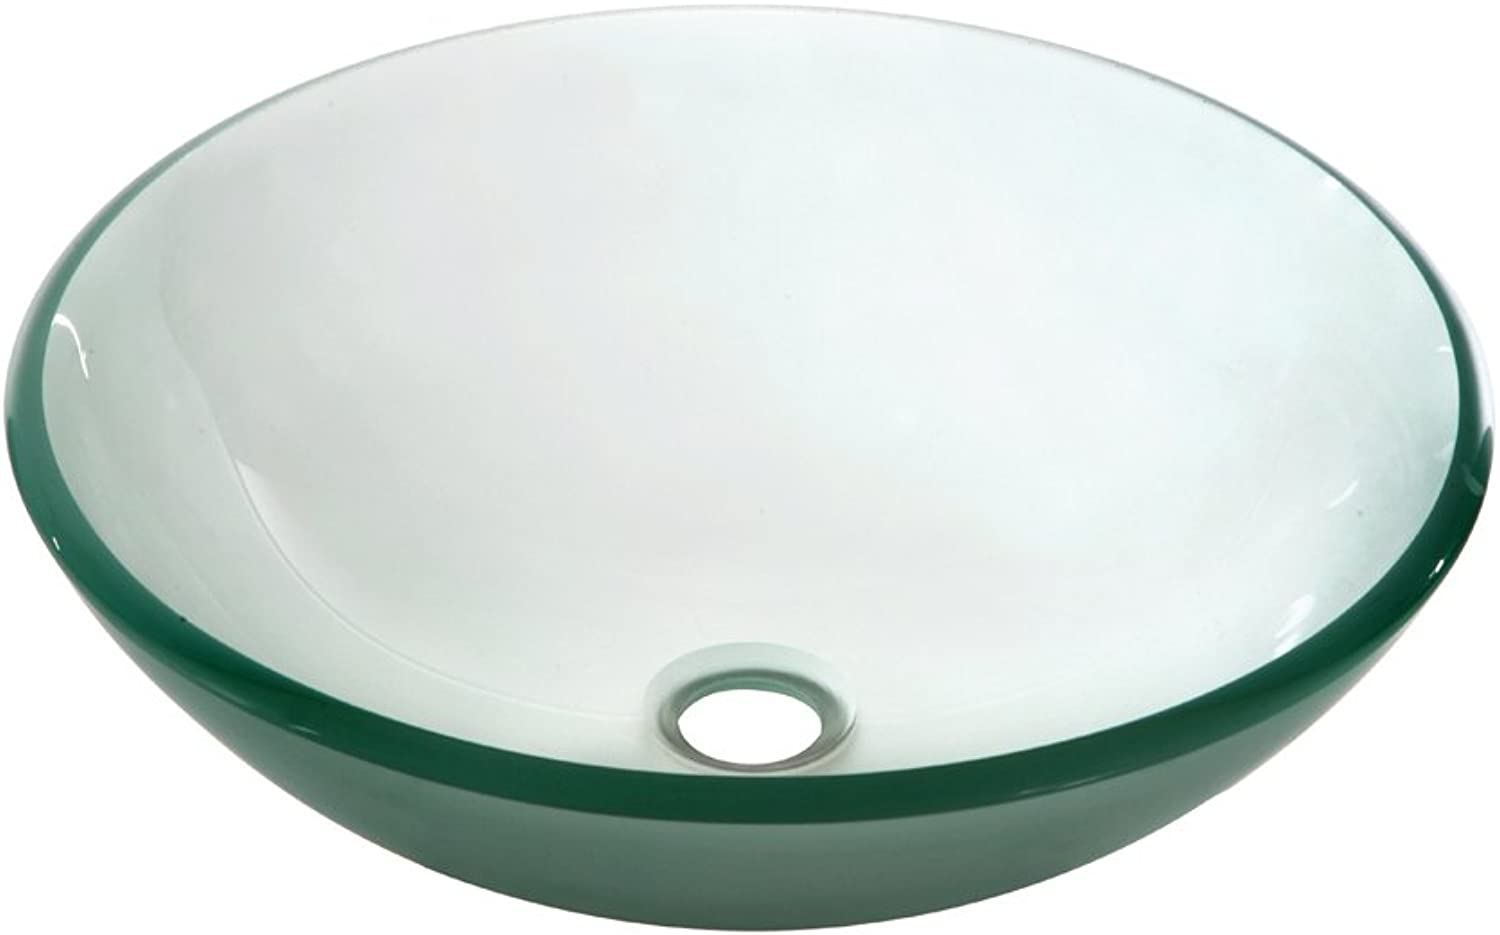 Dawn Tempered Glass Vessel Sink-Round Shape, Frosted